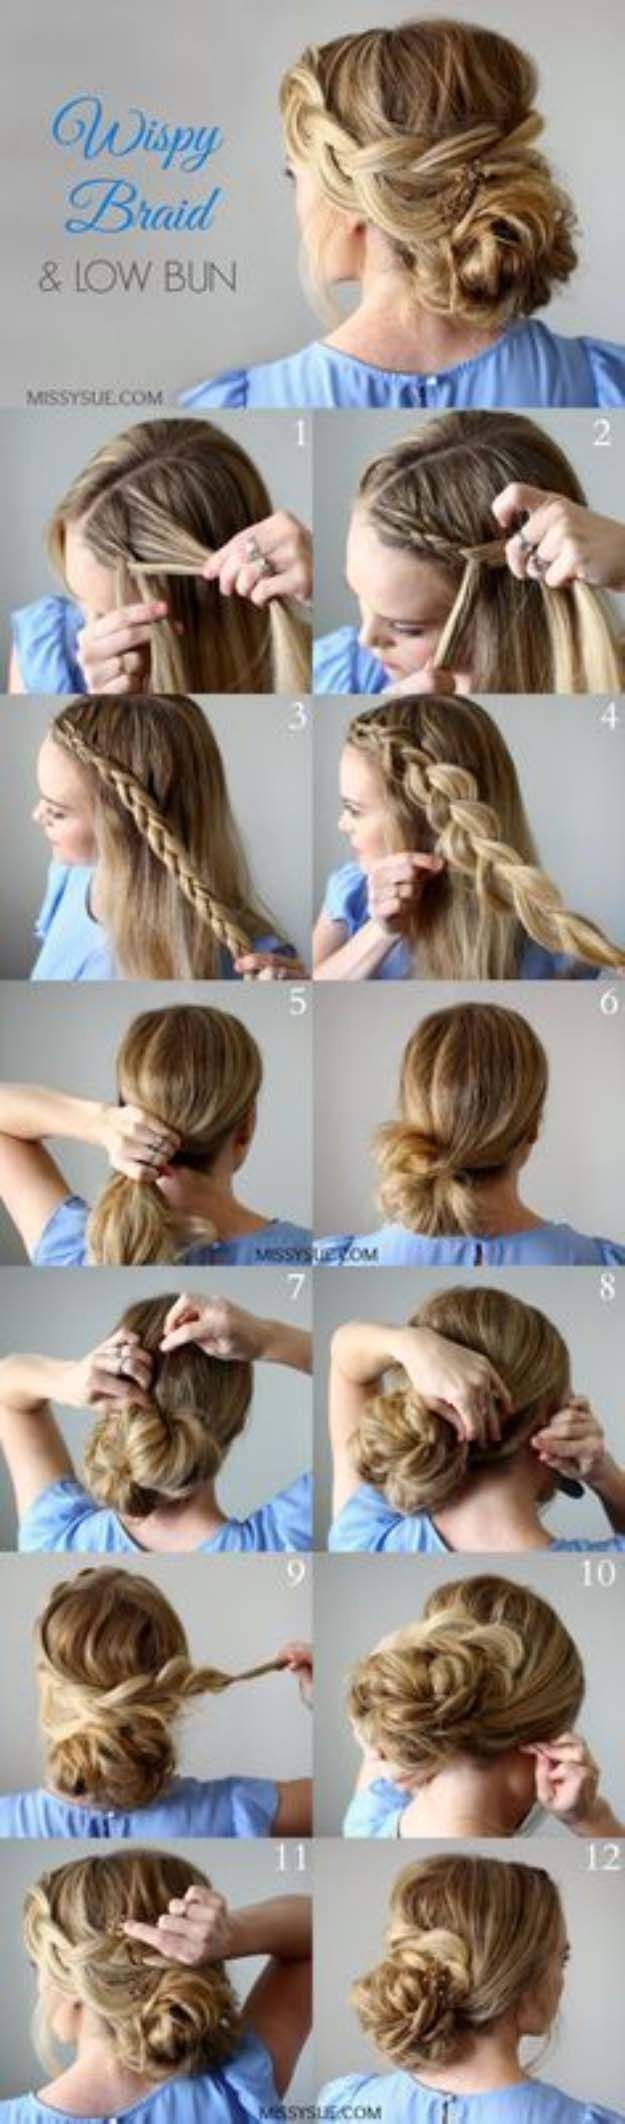 Quick and easy hairstyles for school best hairstyles for brides